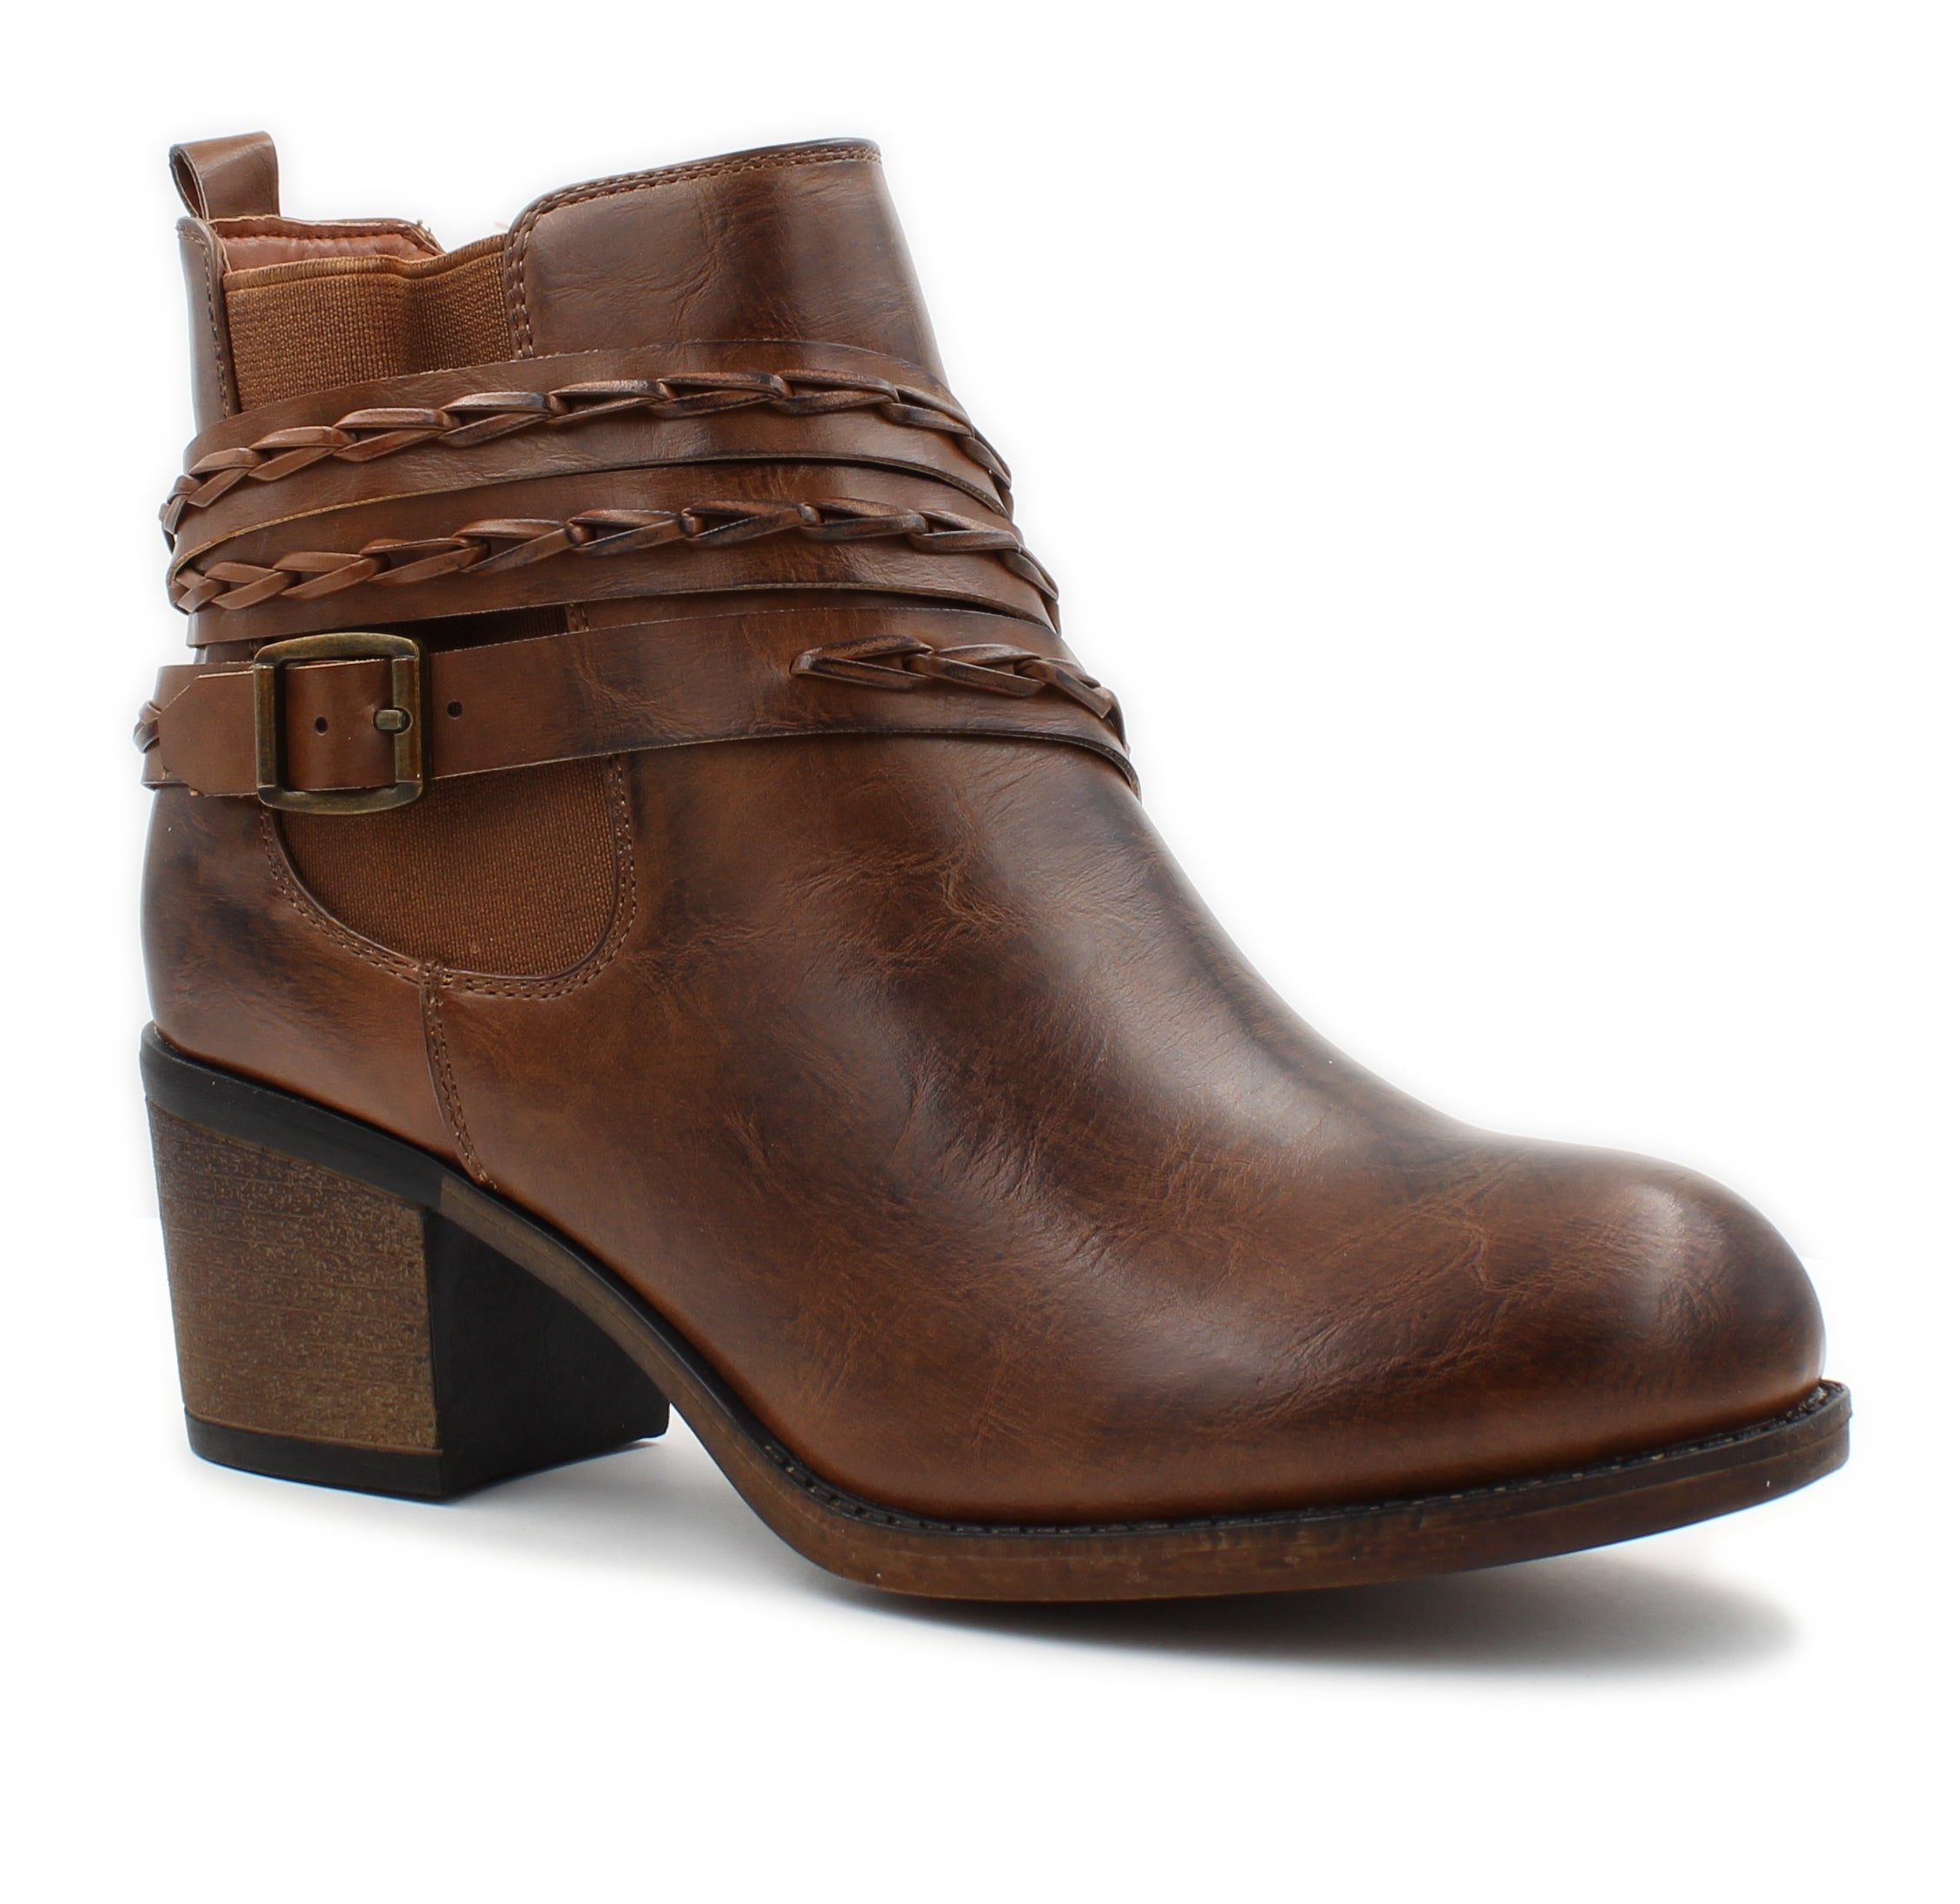 Corkys Womens Wrap Leather Ankle Booties